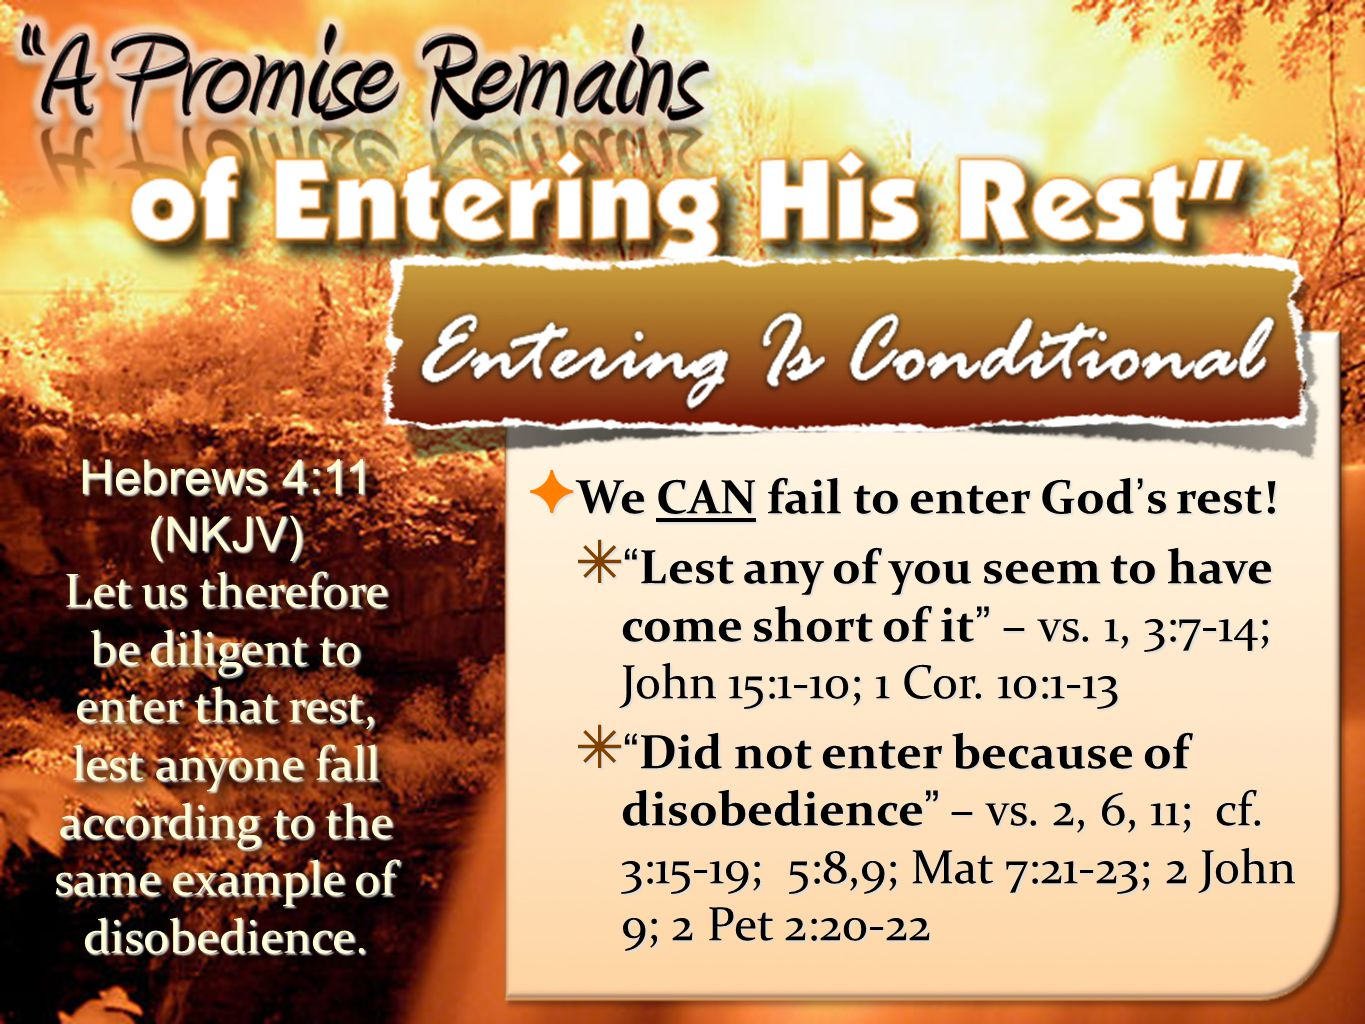 Hebrews 4:11 (NKJV) Let us therefore be diligent to enter that rest, lest anyone fall according to the same example of disobedience.